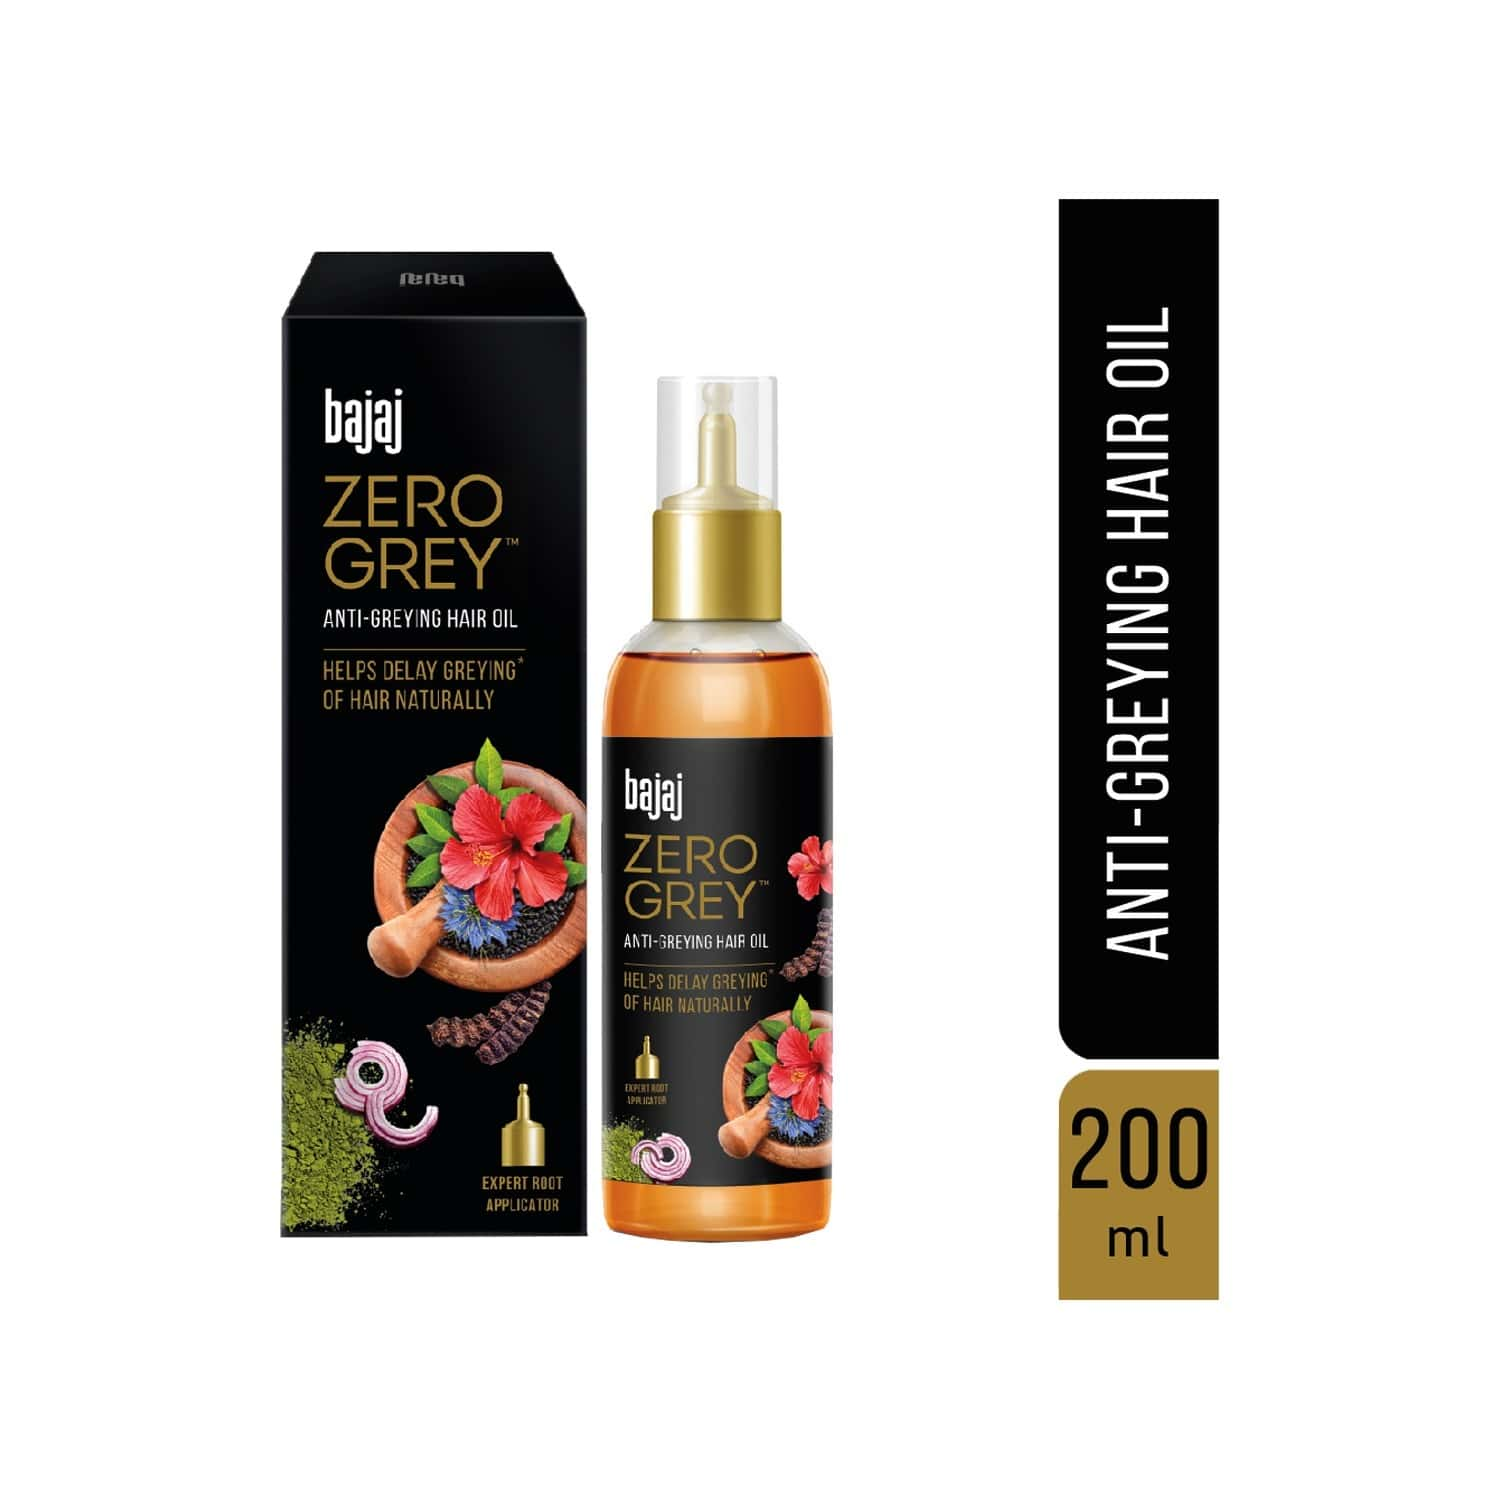 Bajaj Zero Grey Anti - Greying Hair Oil - 200ml